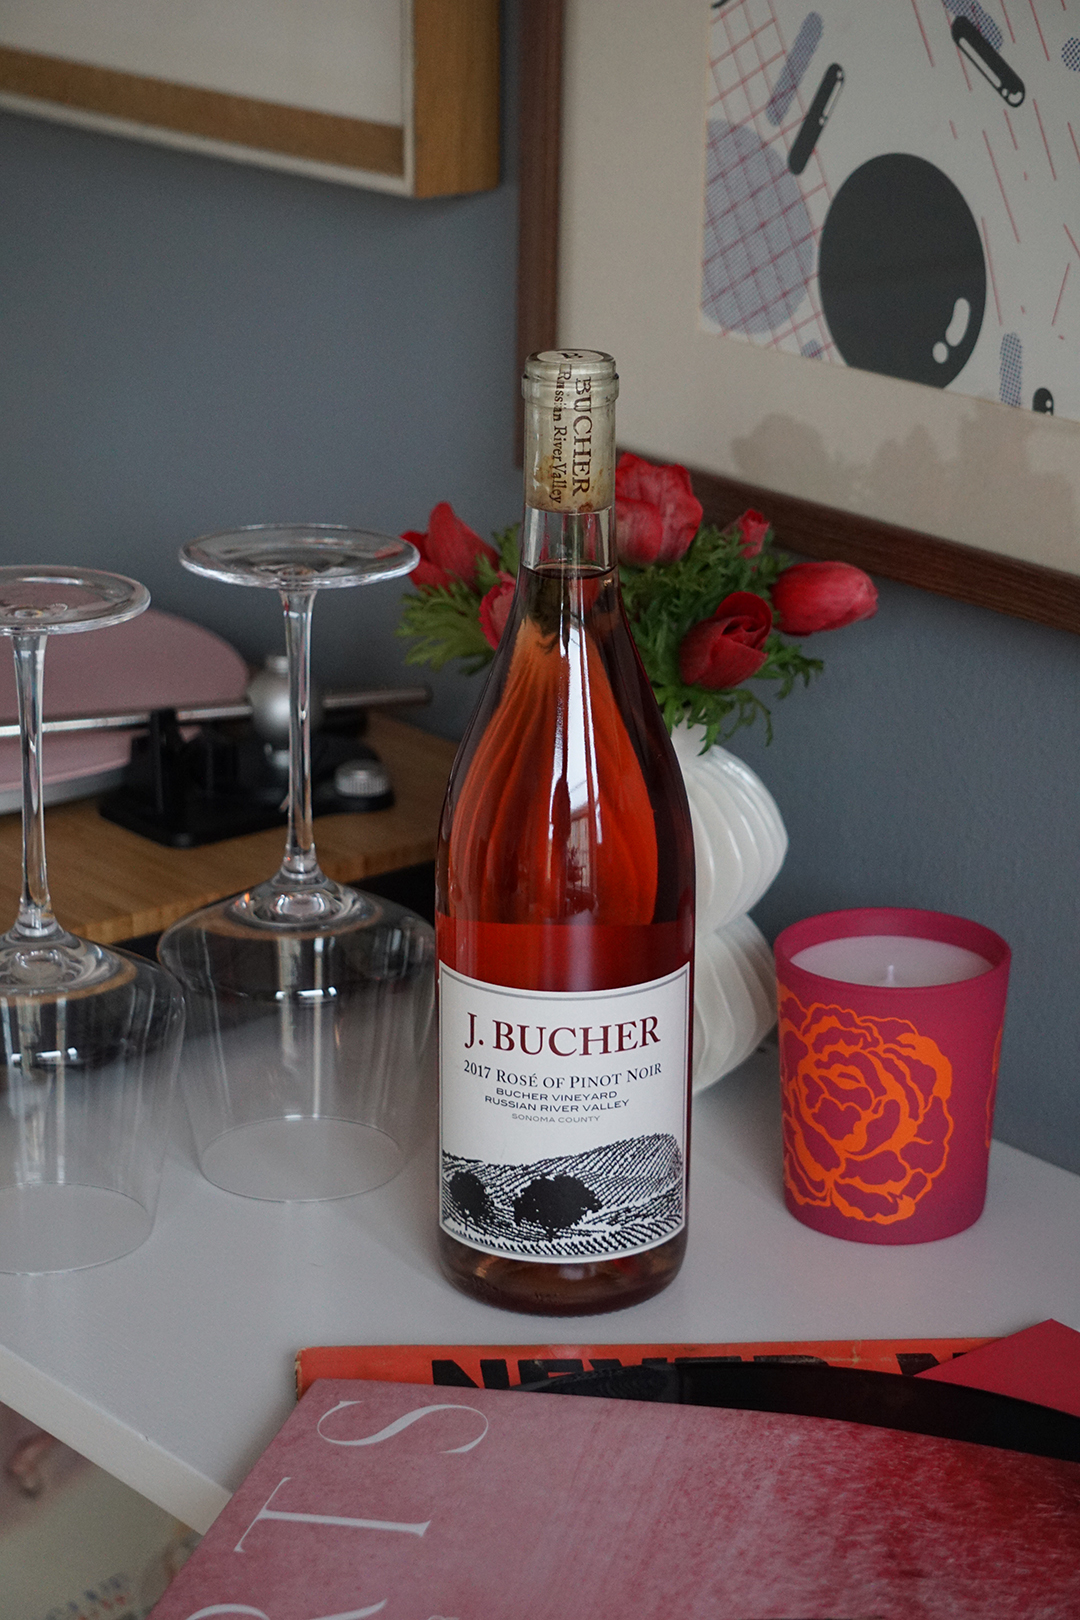 THE KOSMOPOLIMAN:^ Me, Myself, and Wine: Self-Care and Bucher Rosé for Valentine's Day